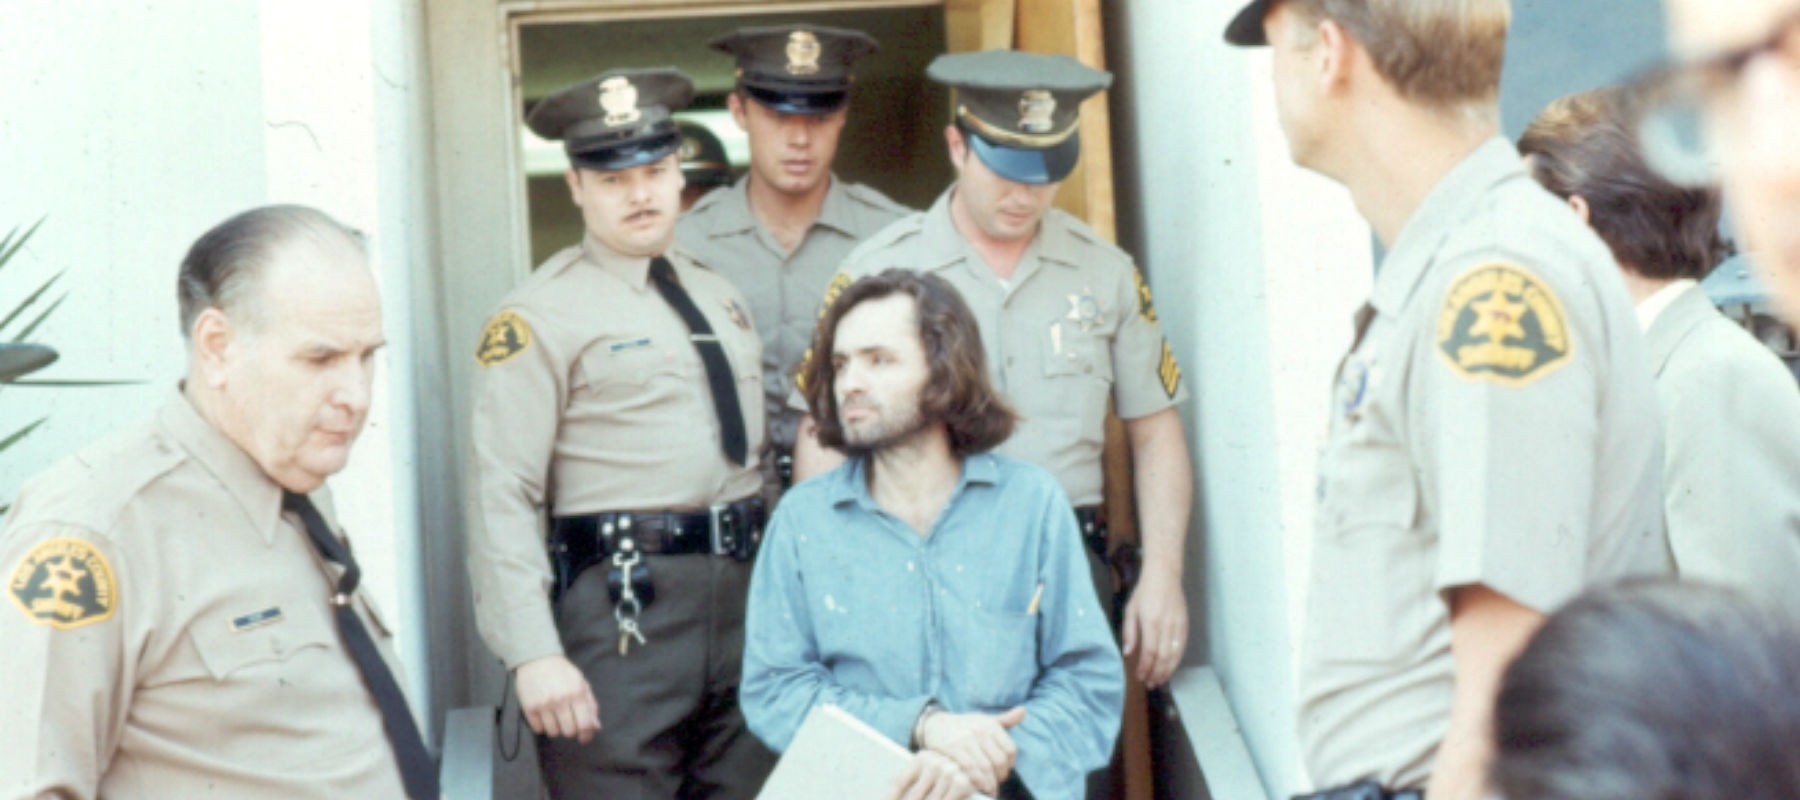 charles manson vs woodstock s cover story summer of credit getty images